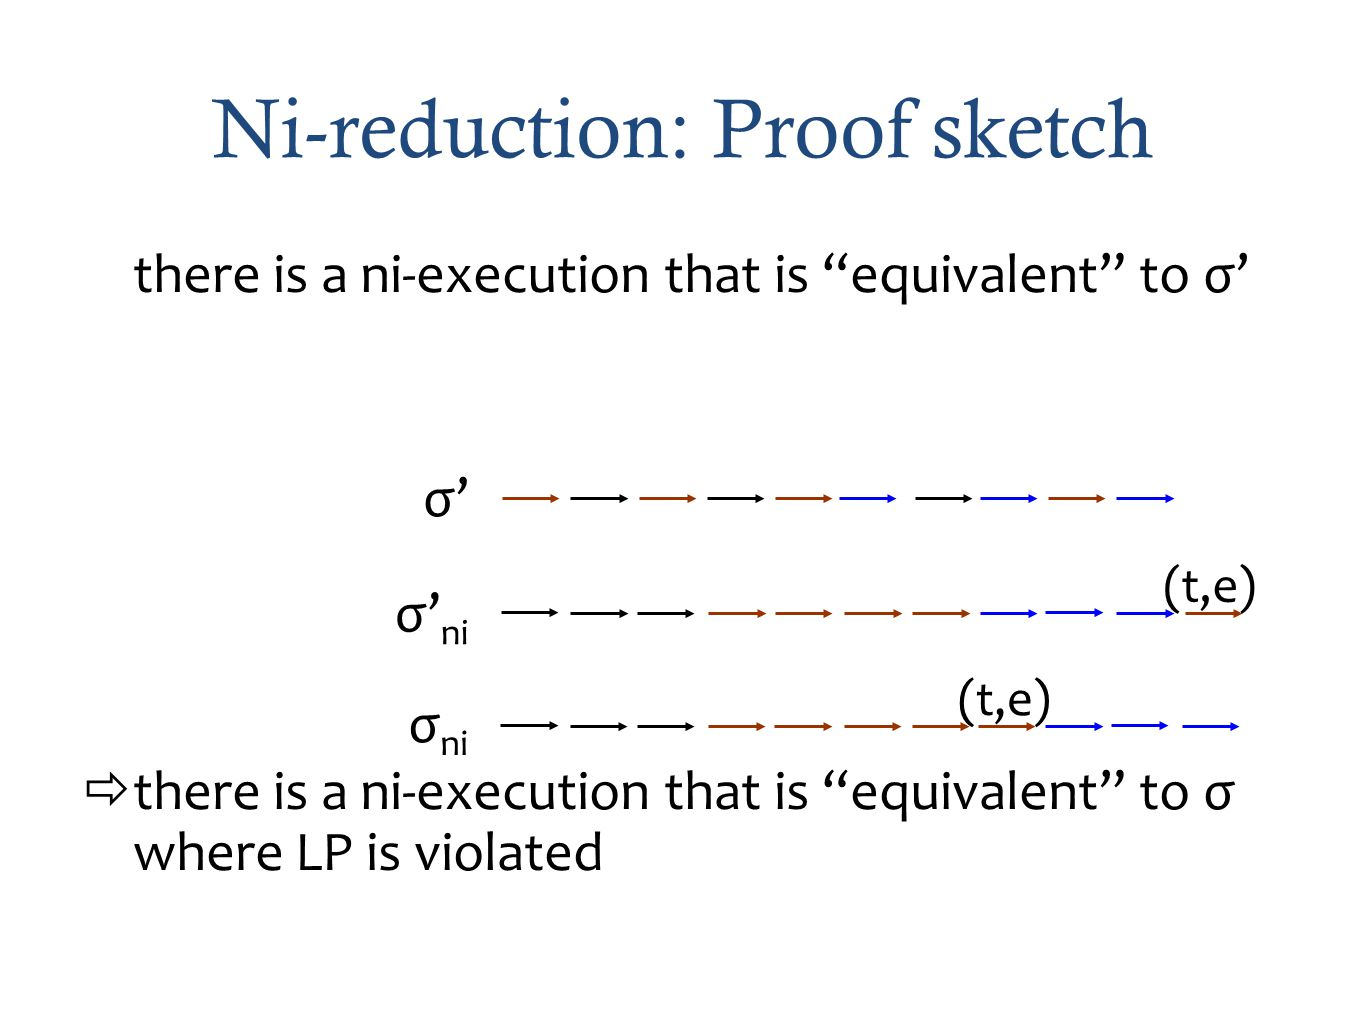 Ni-reduction: Proof sketch there is a ni-execution that is equivalent to σ there is a ni-execution that is equivalent to σ where LP is violated σ σ ni (t,e)